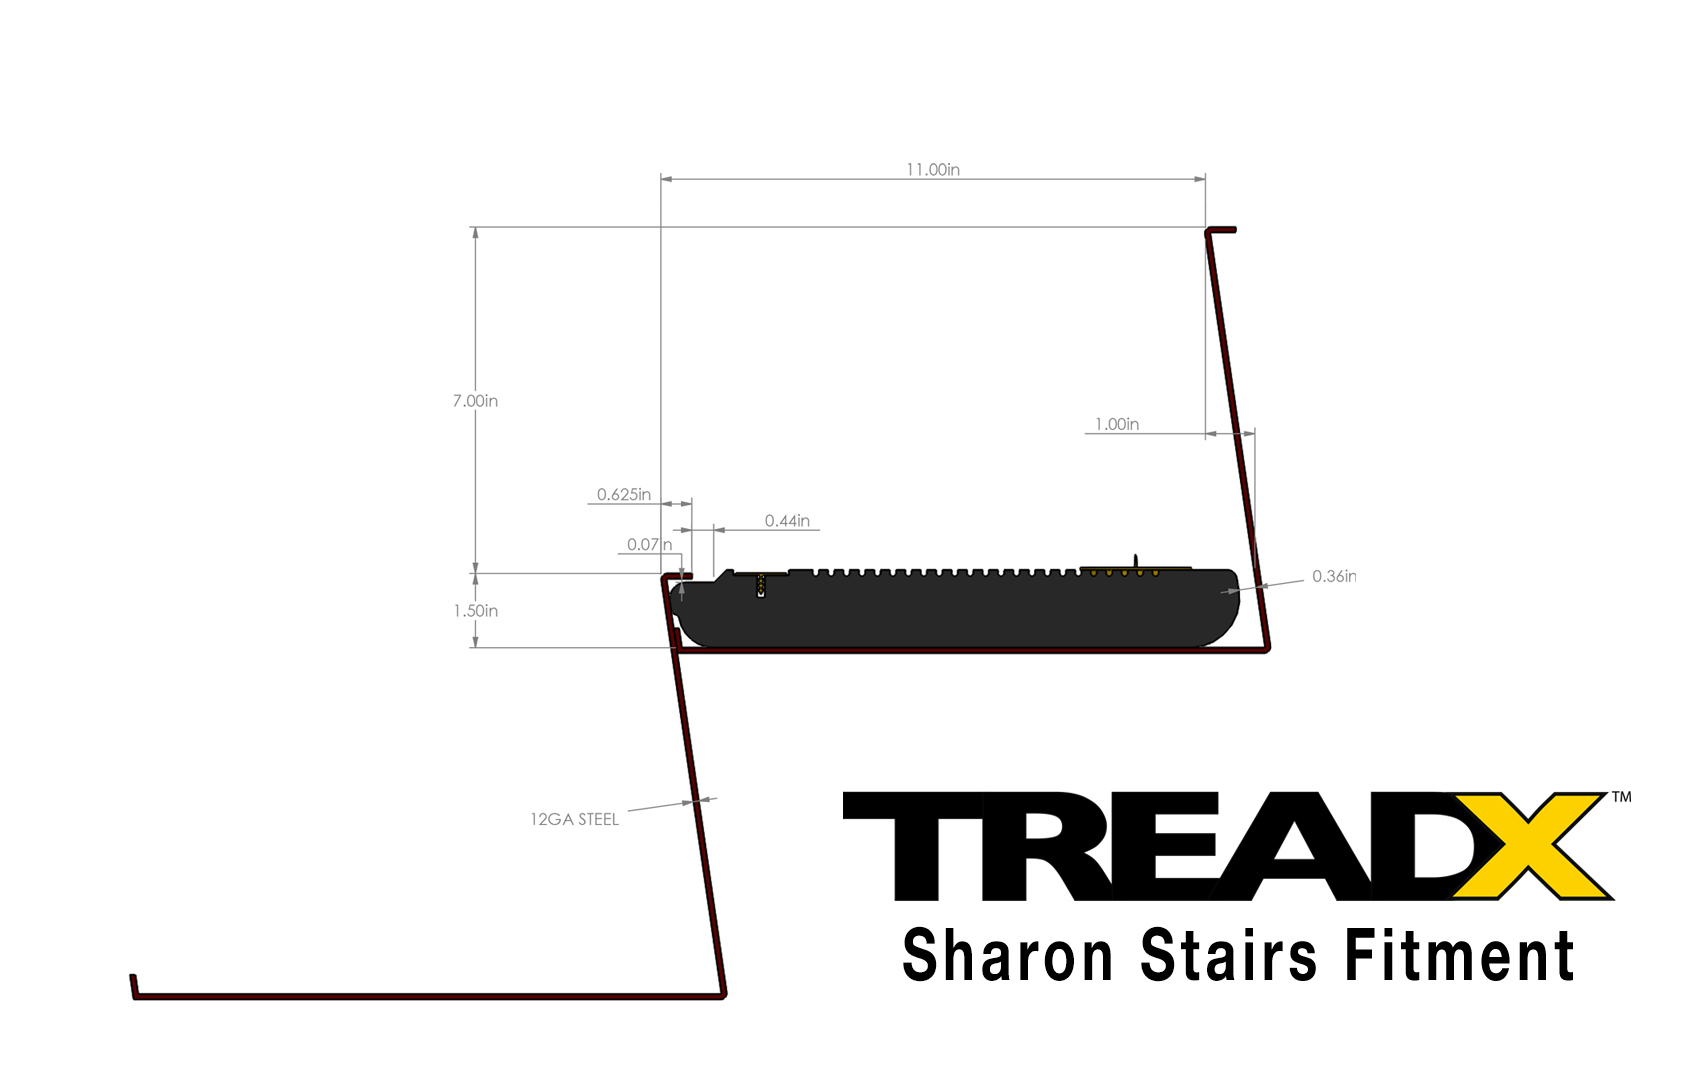 Staron Stairs - 1.5 Fitment Image.jpg